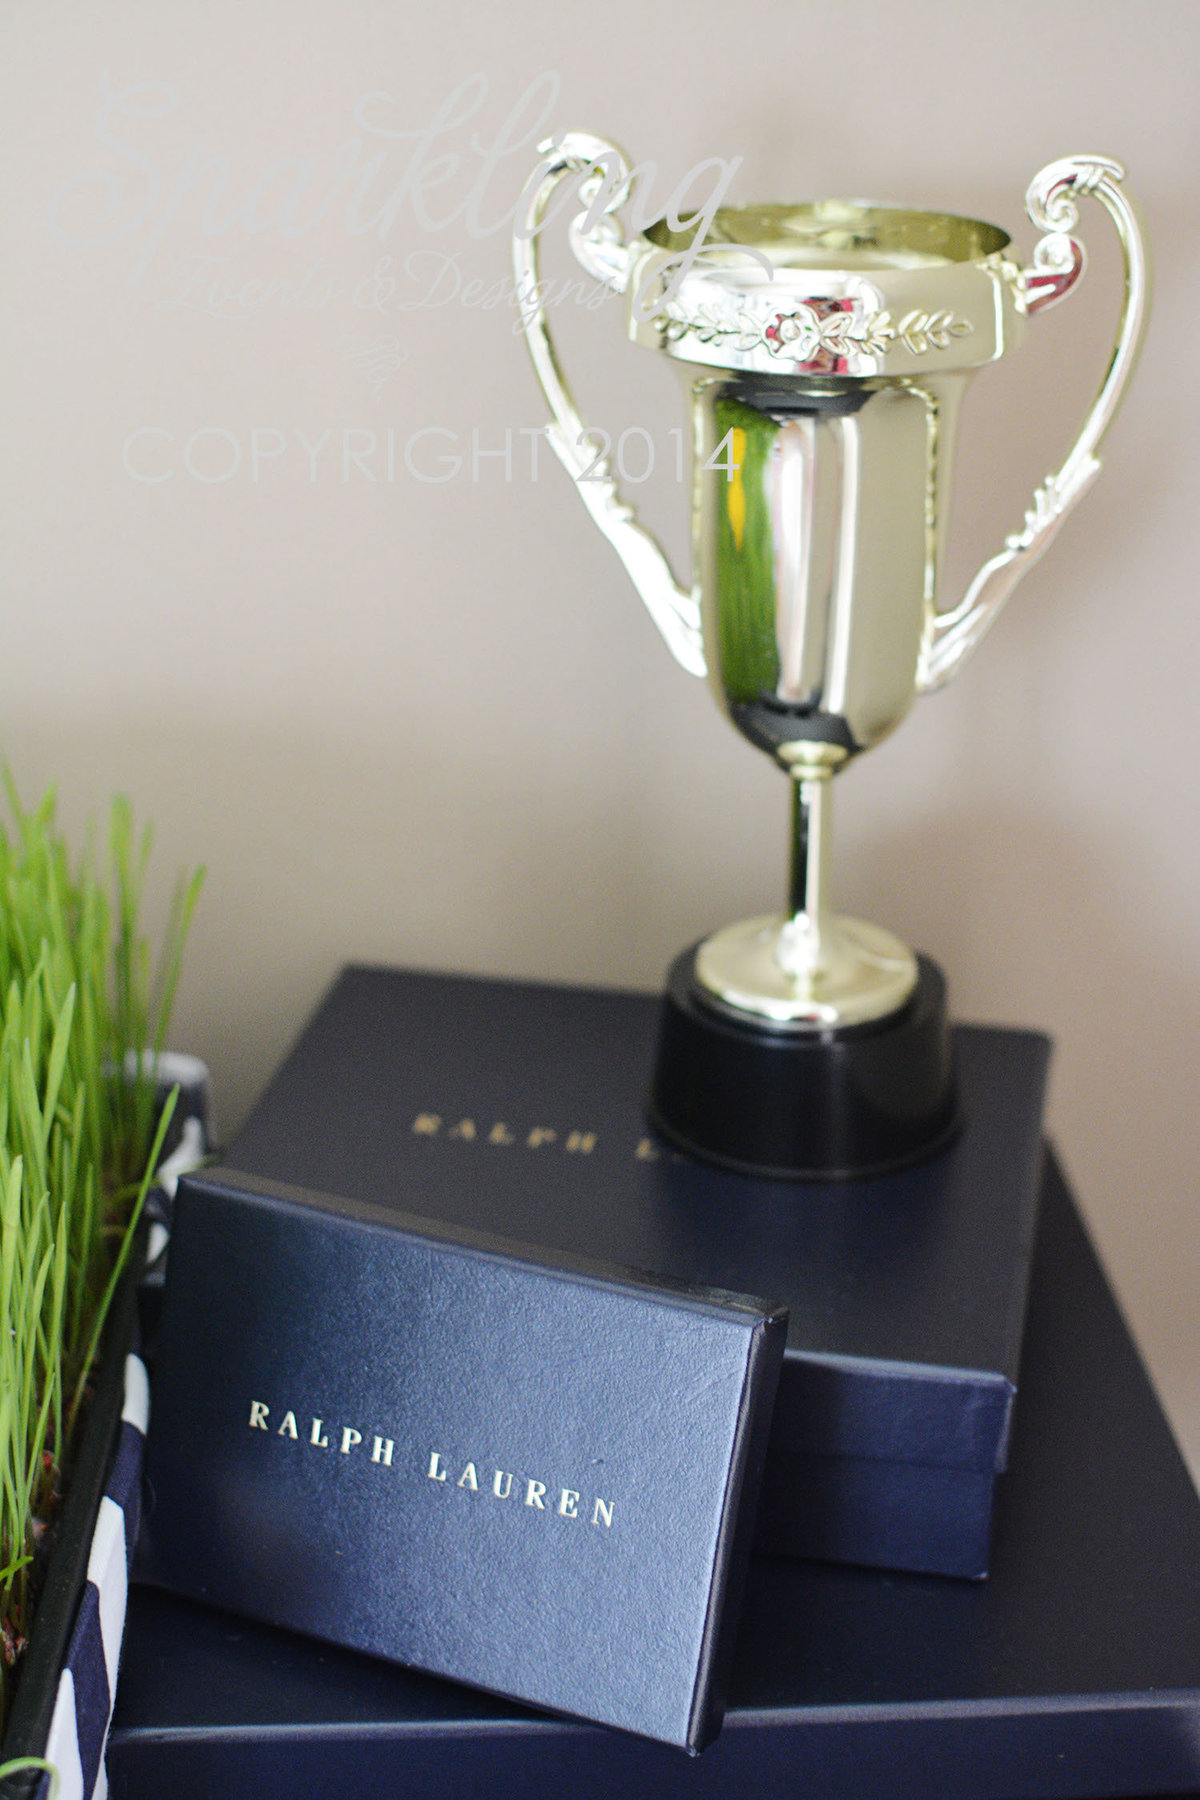 Sparkling Events Designs - Polo Club Party Trophy